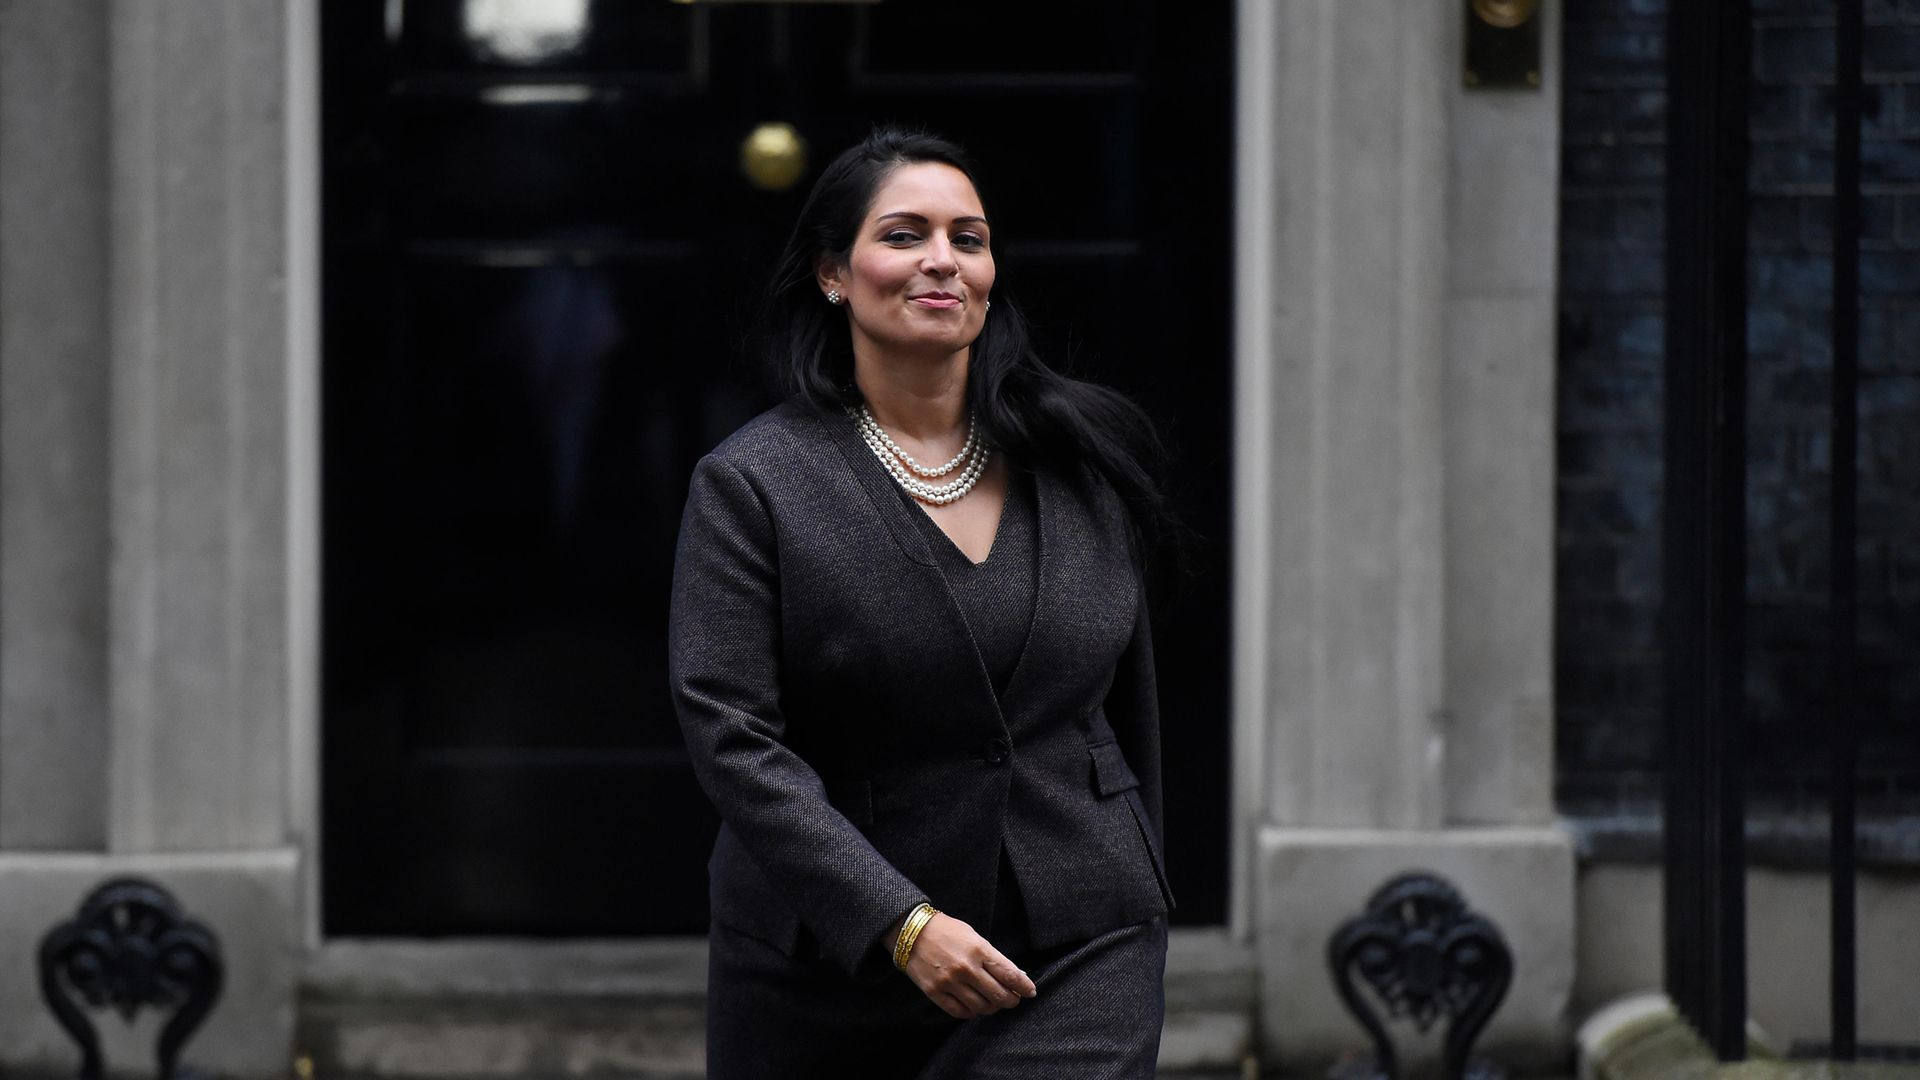 Priti Patel leaving Downing Street, in February 2020 - Credit: Getty Images